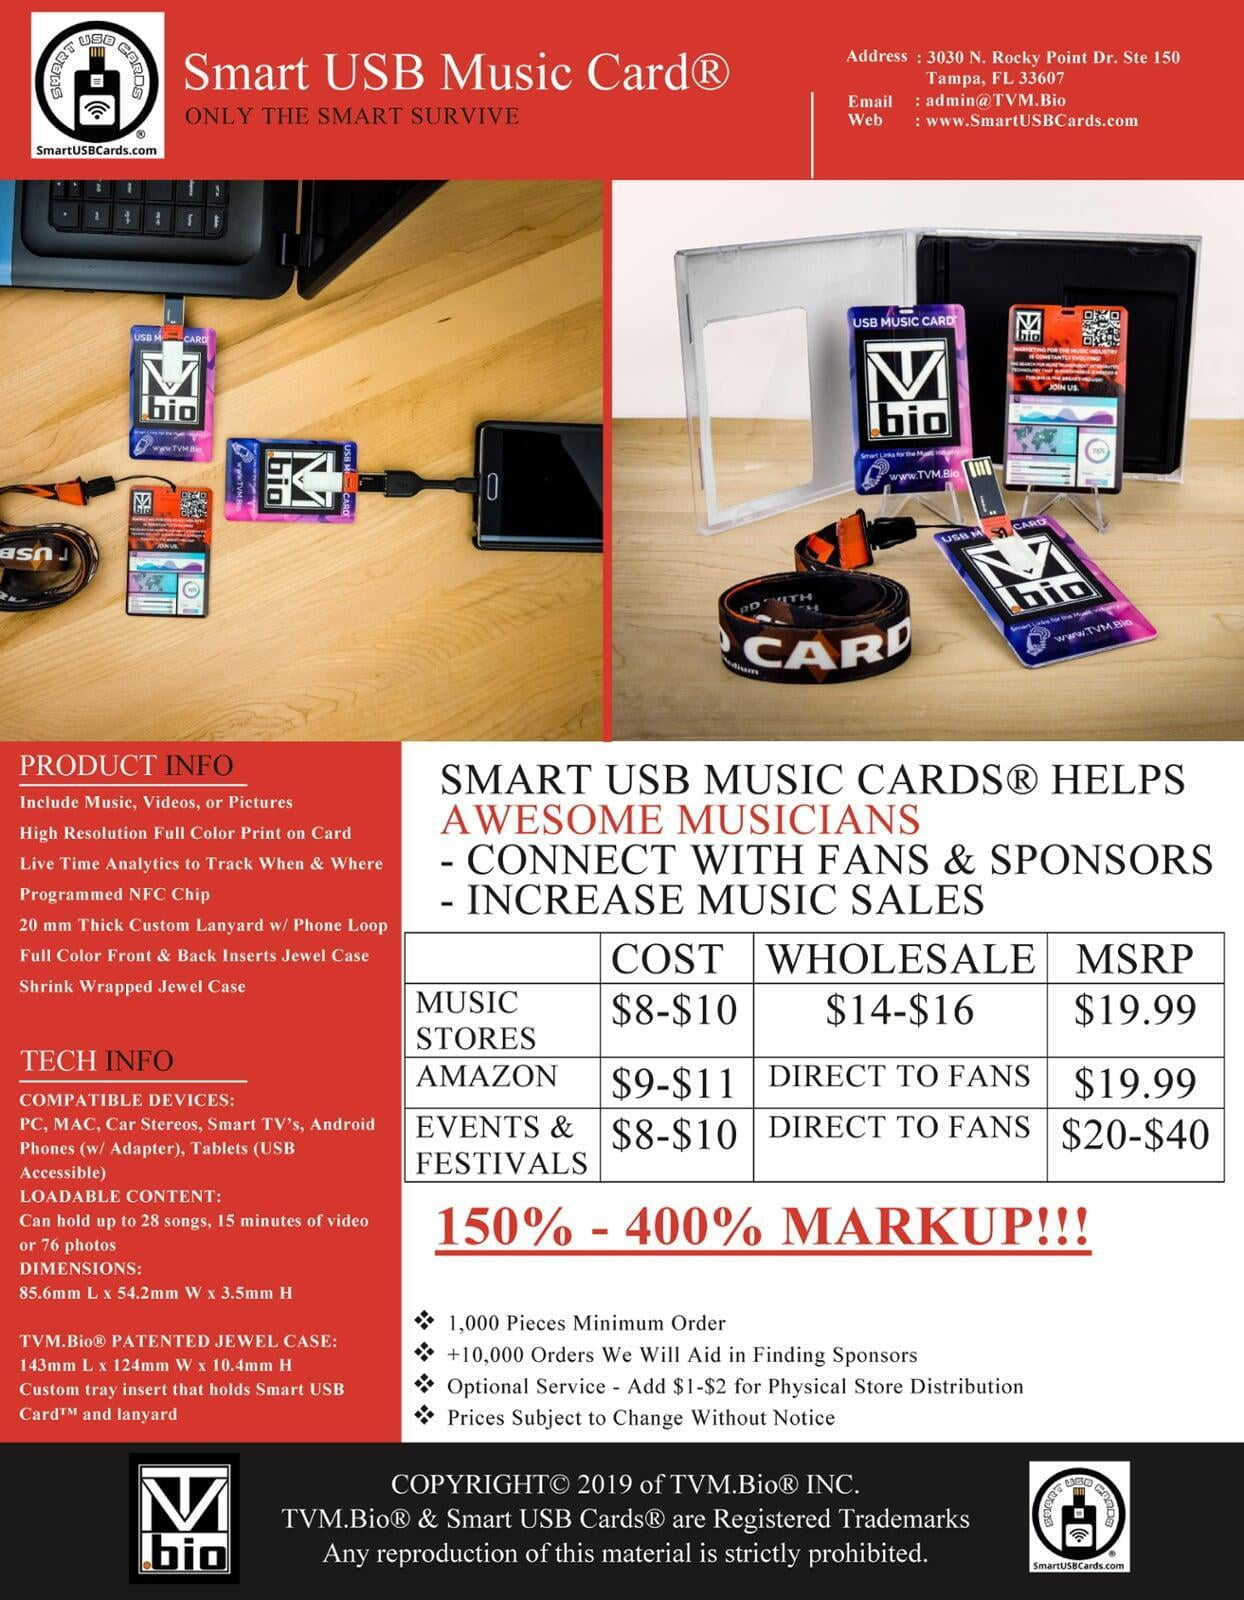 USB Music Card for music concerts, festivals, tours, and live events